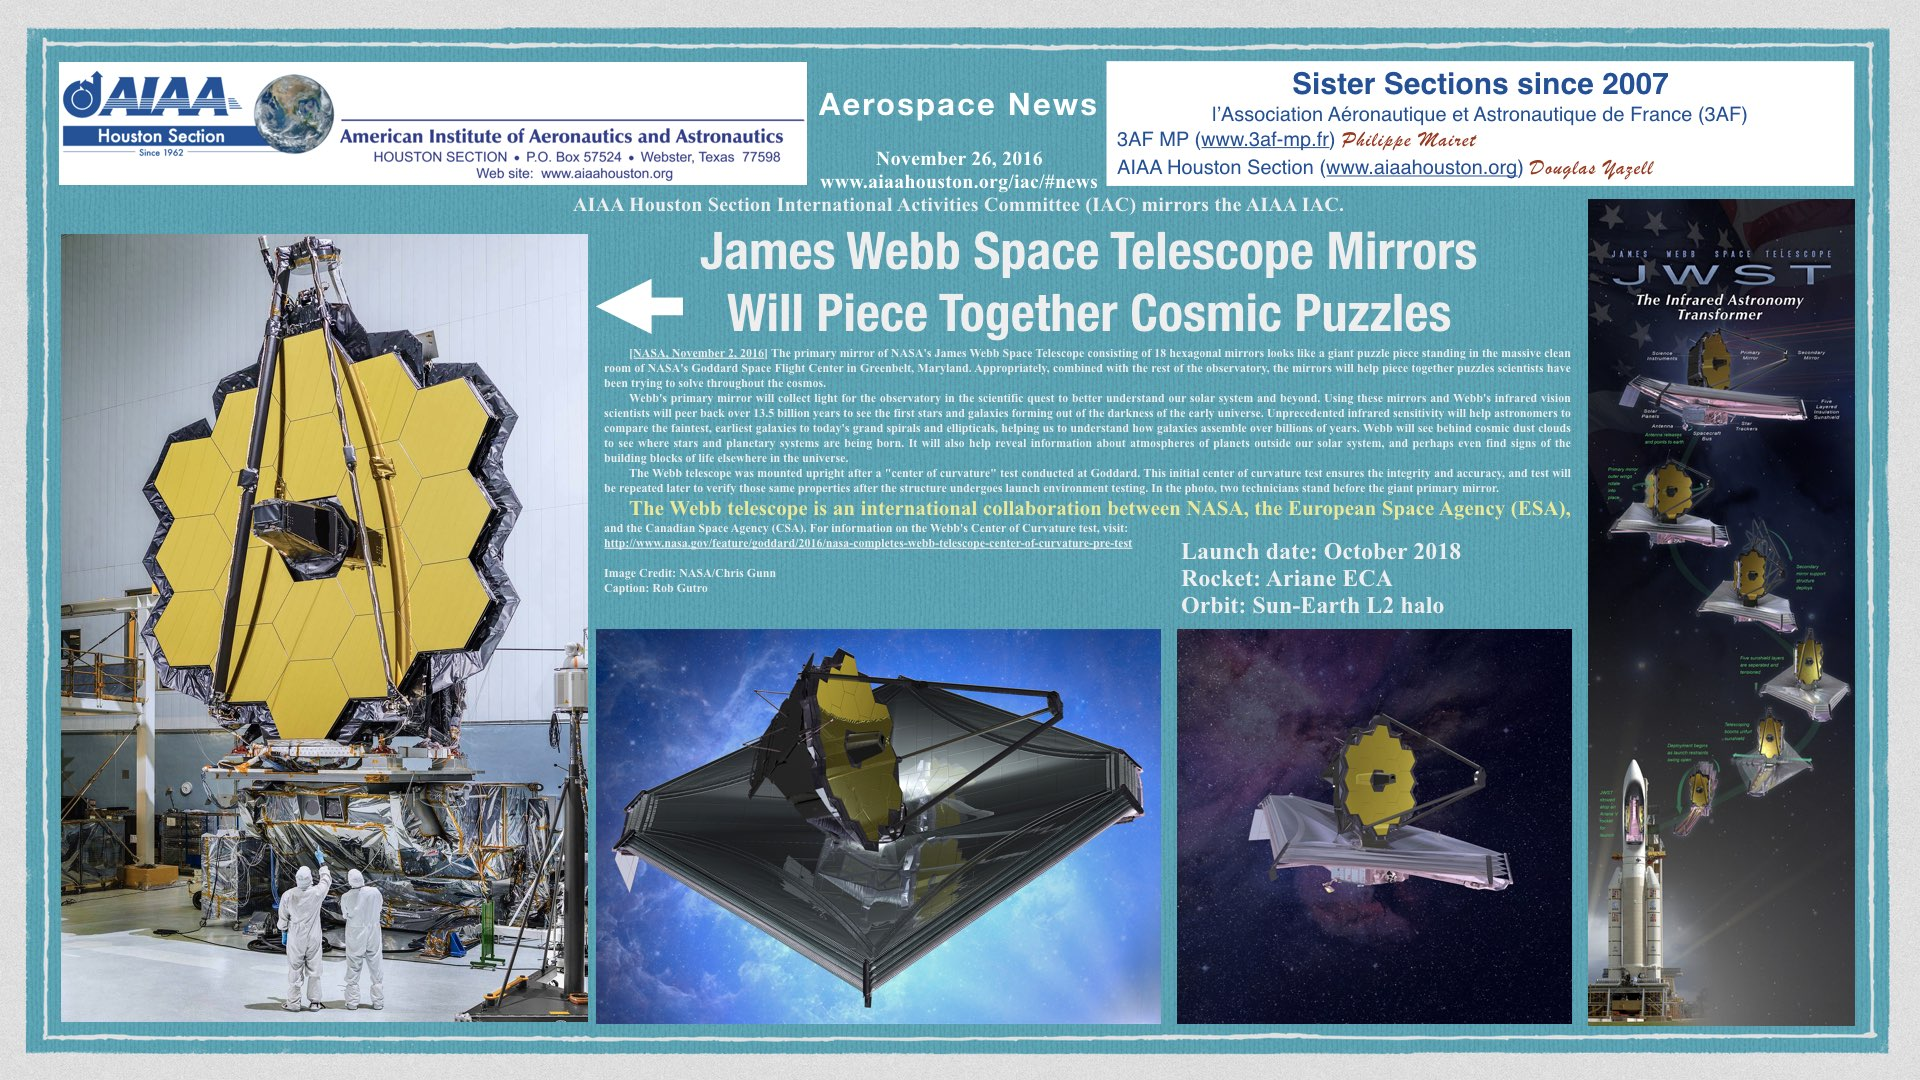 Above: James Webb Space Telescope Mirrors Will Piece Together Cosmic Puzzles. (Click to zoom.)